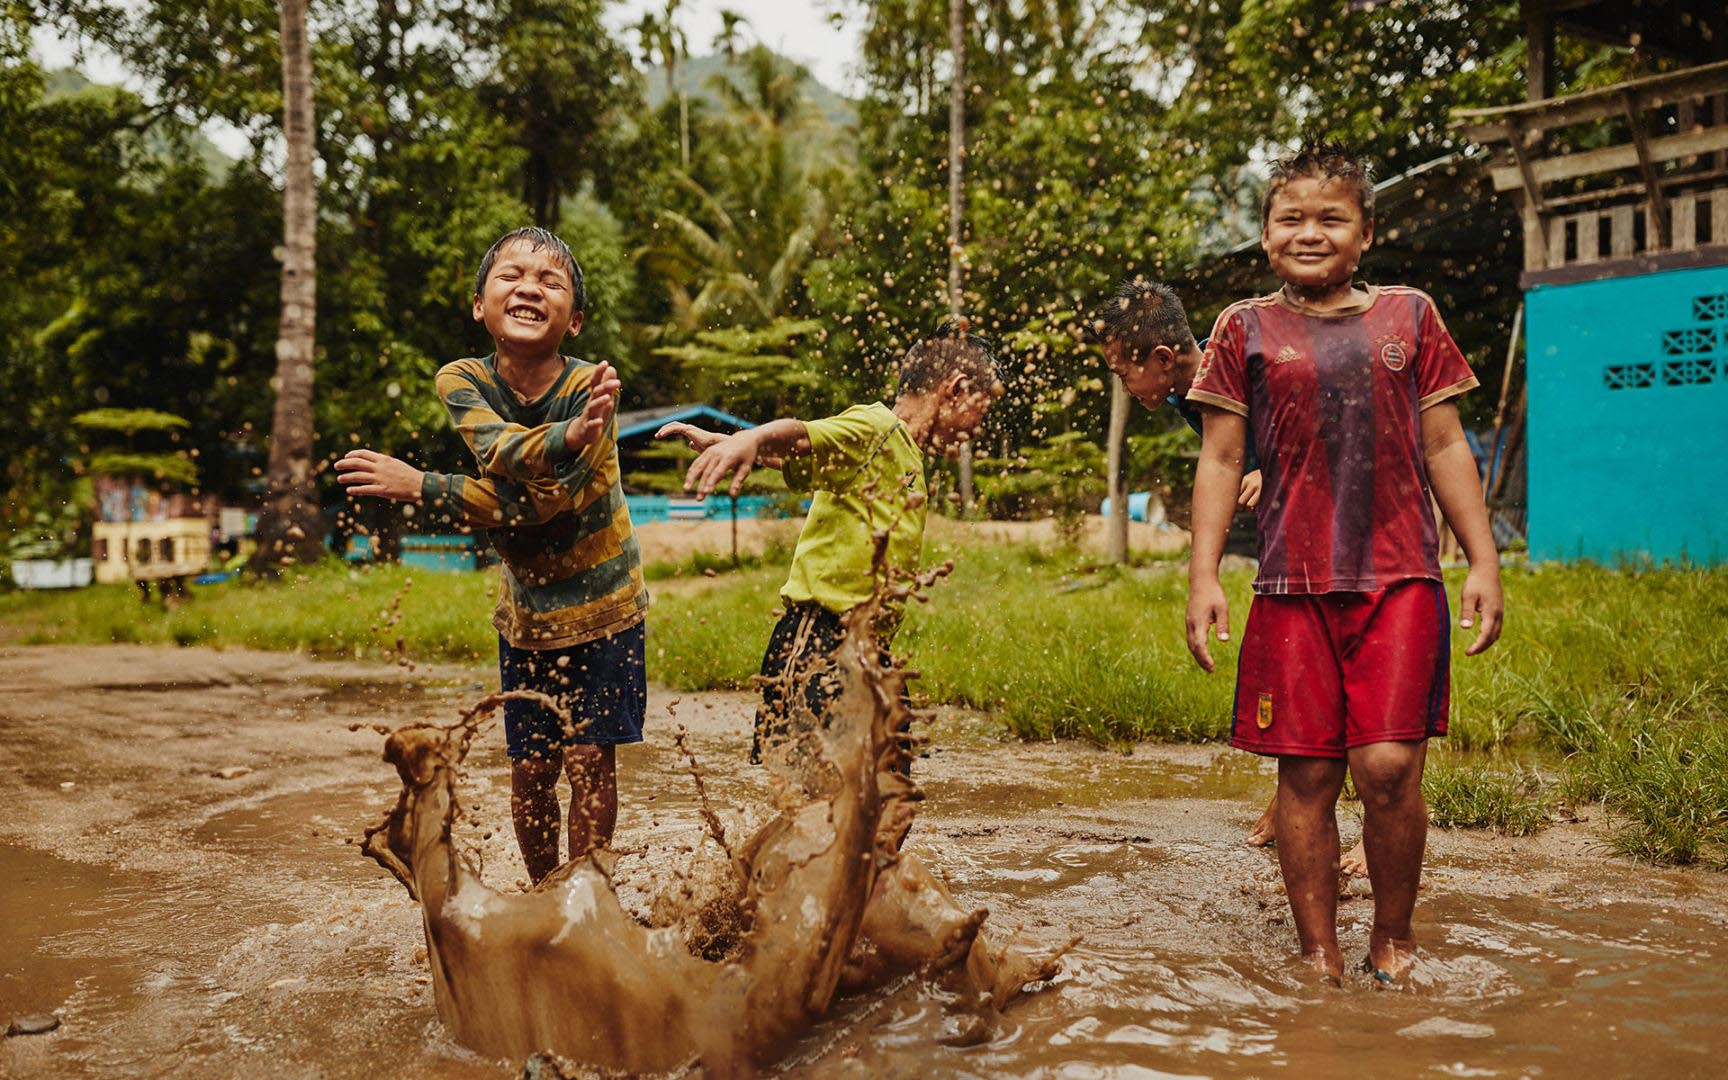 Kids spash in a mud puddle and laugh